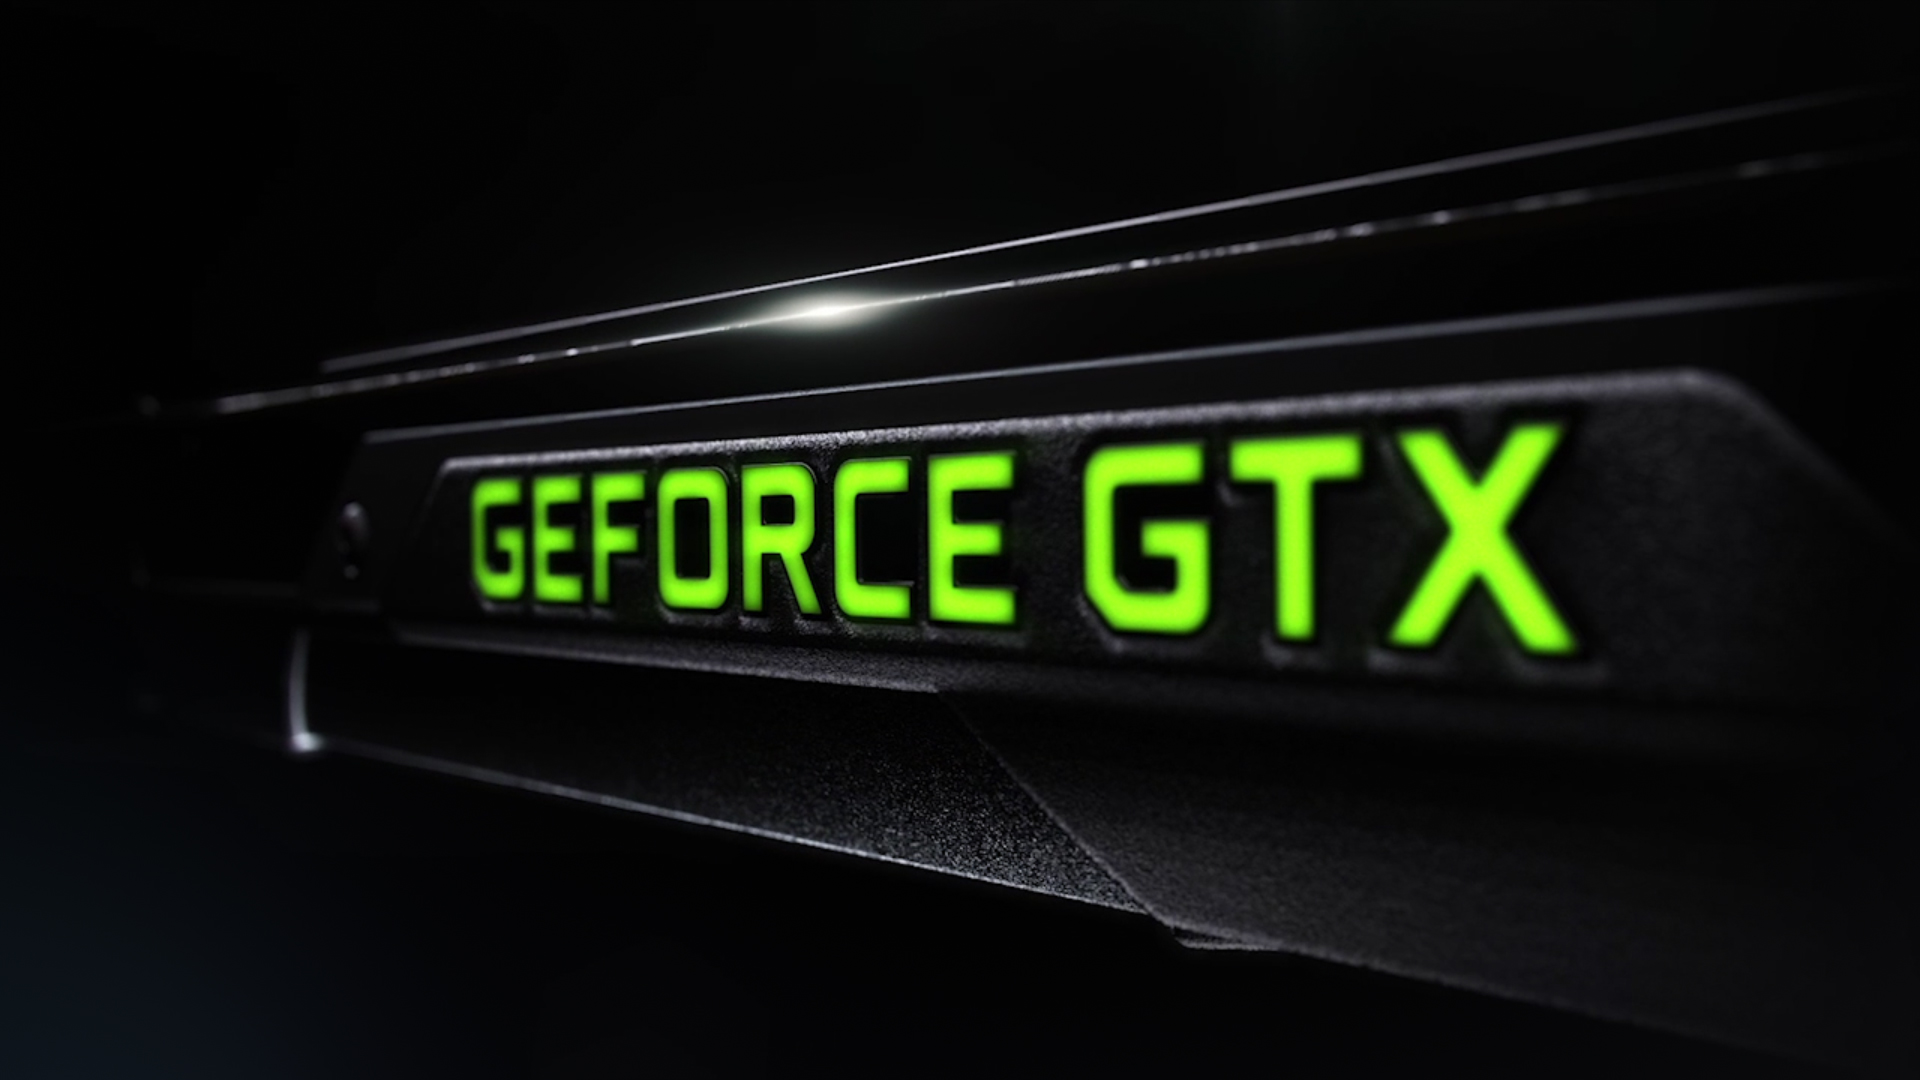 Nvidia anuncia GeForce GTX 1080, placa de vídeo ideal para games pesados